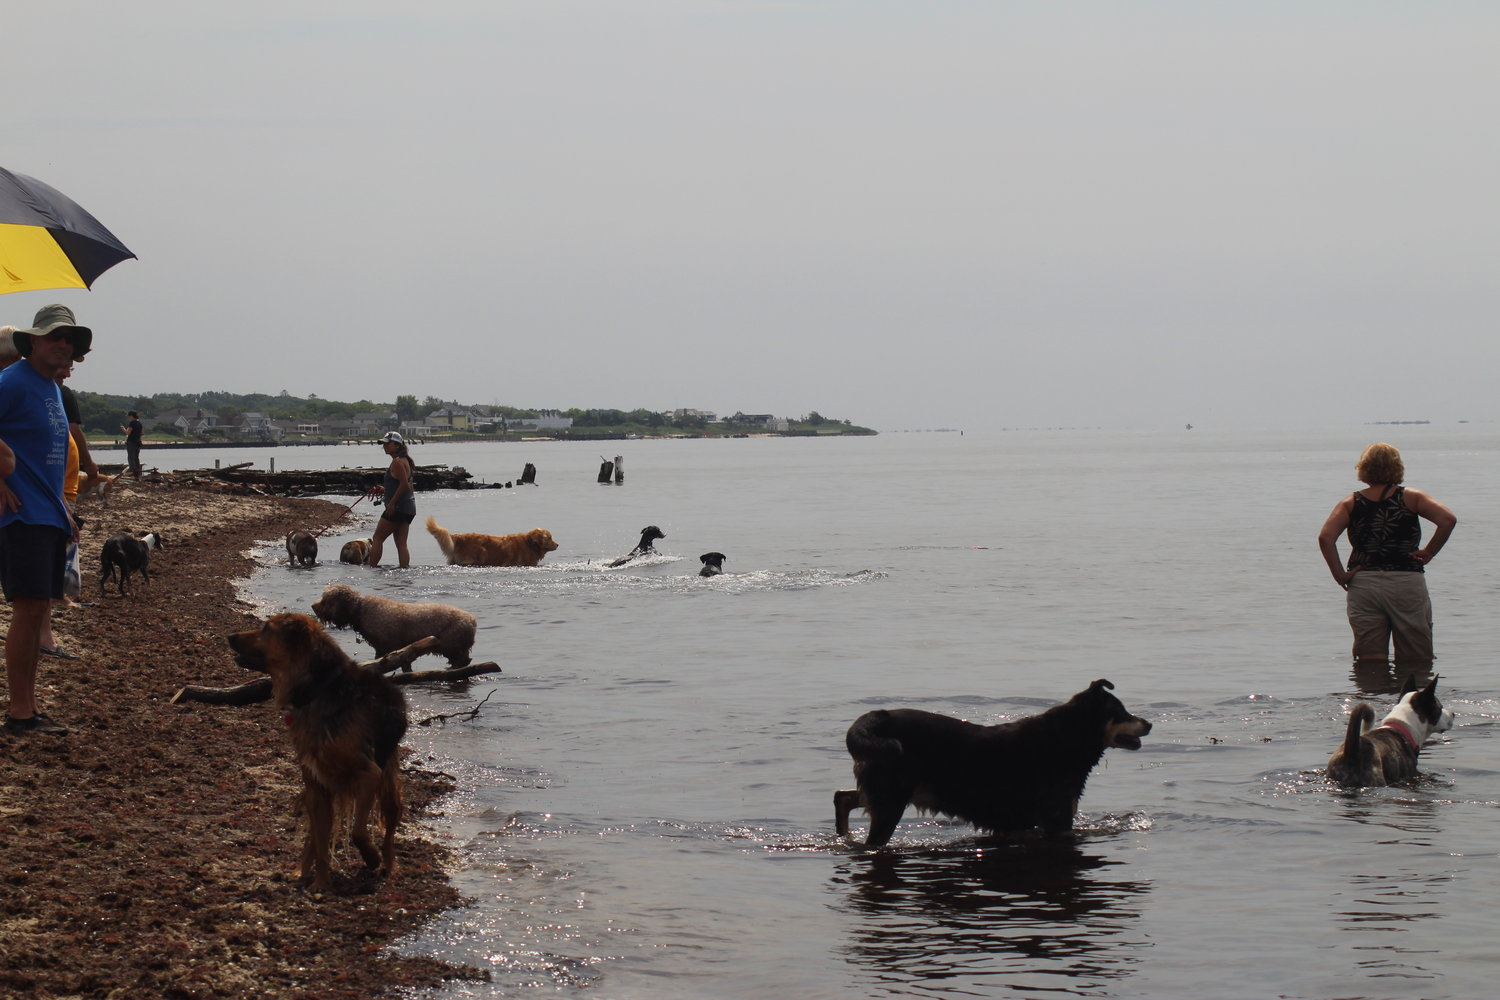 A Long Island dog advocacy group wants to get New York State to allow dogs on some of the 14,000 miles of shoreline.